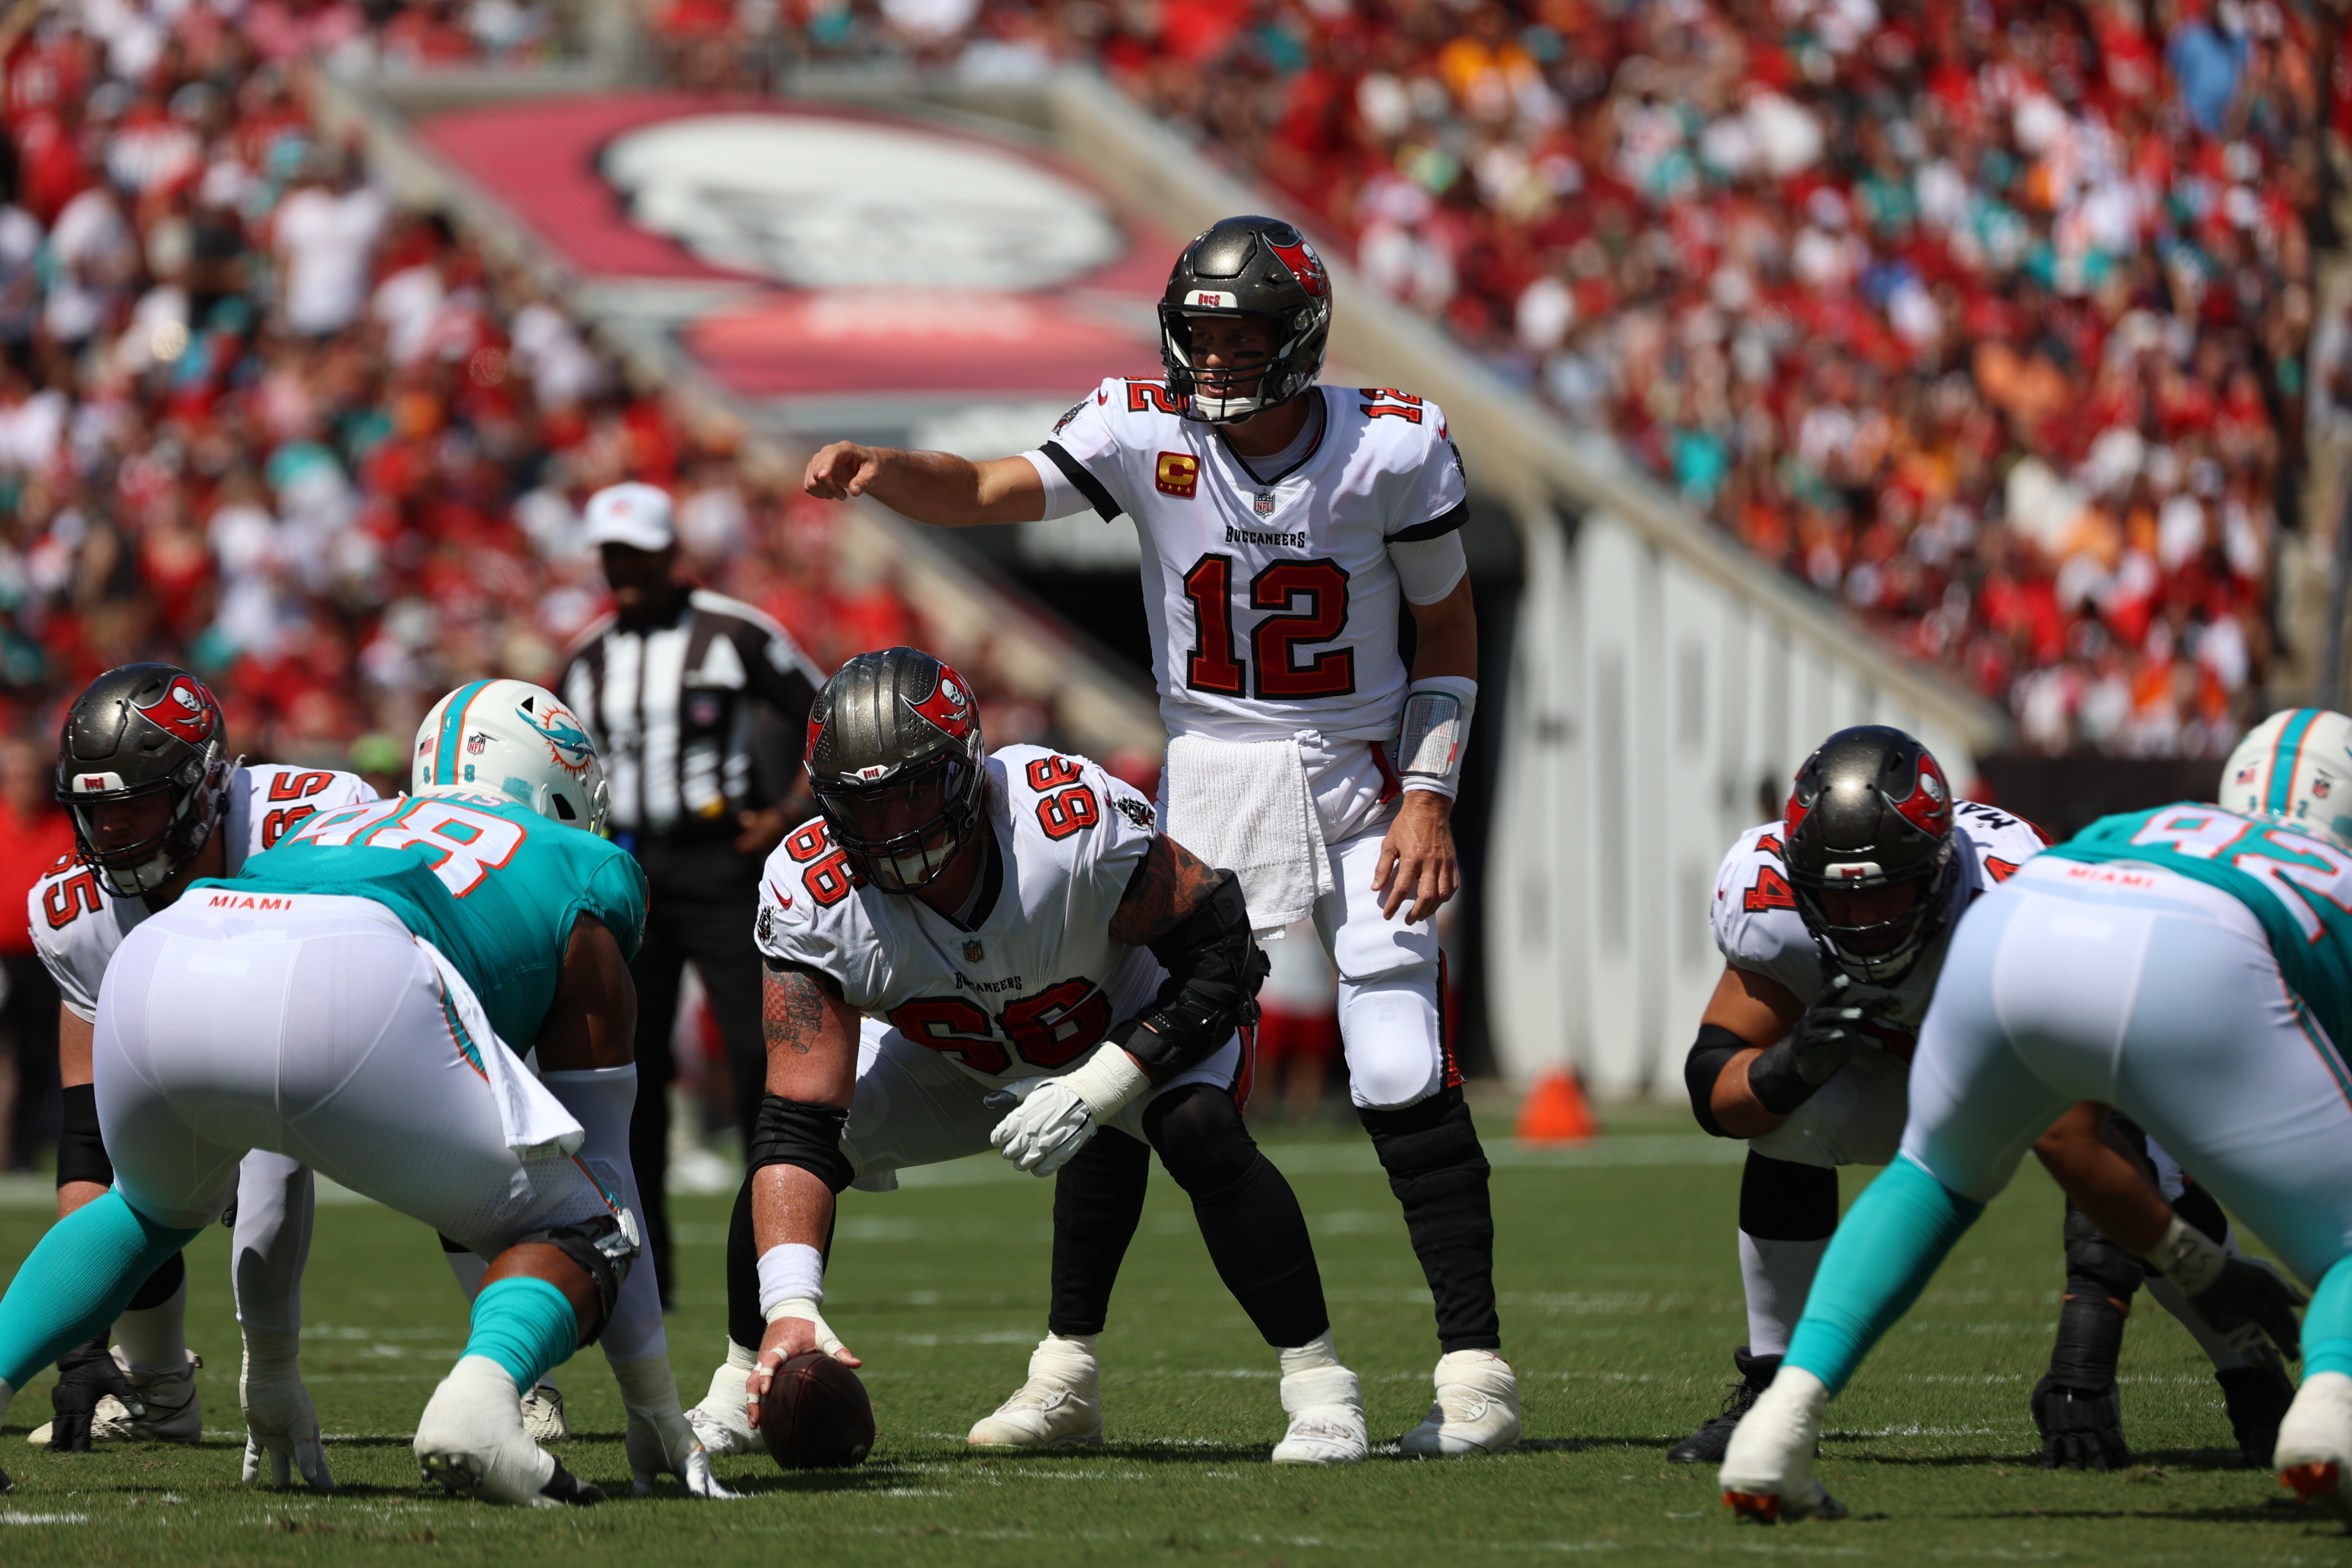 Buccaneers quarterback Tom Brady (12) leads the NFL in passing yards with 2,064 and has a 107.9 passer rating this season (17 touchdowns, three interceptions).